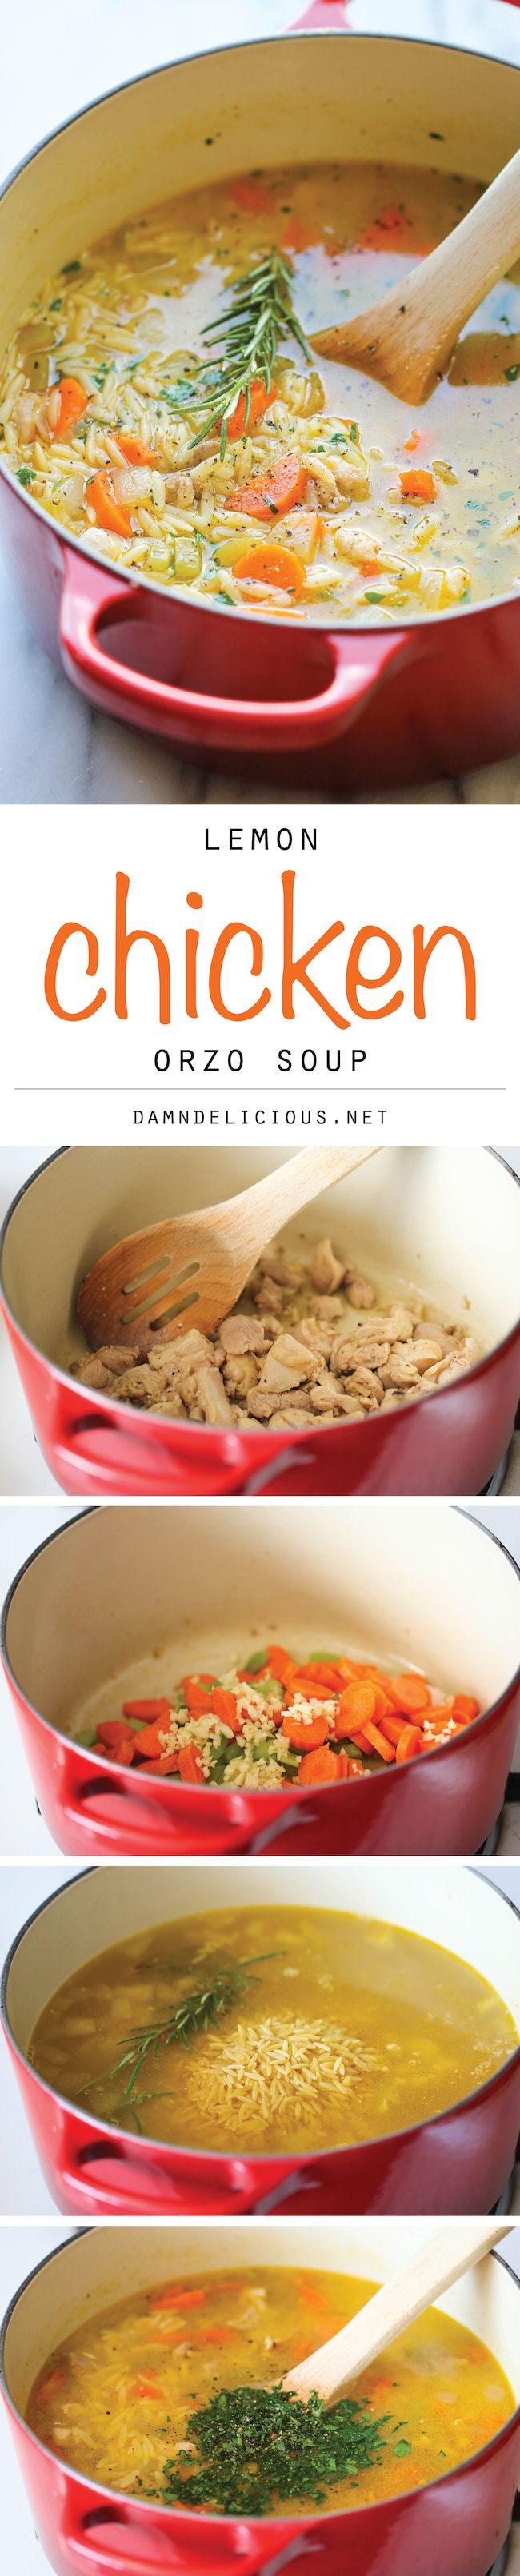 Lemon Chicken Orzo Soup - Chockfull of hearty veggies and tender chicken in a refreshing lemony broth - it's pure comfort in a bowl!